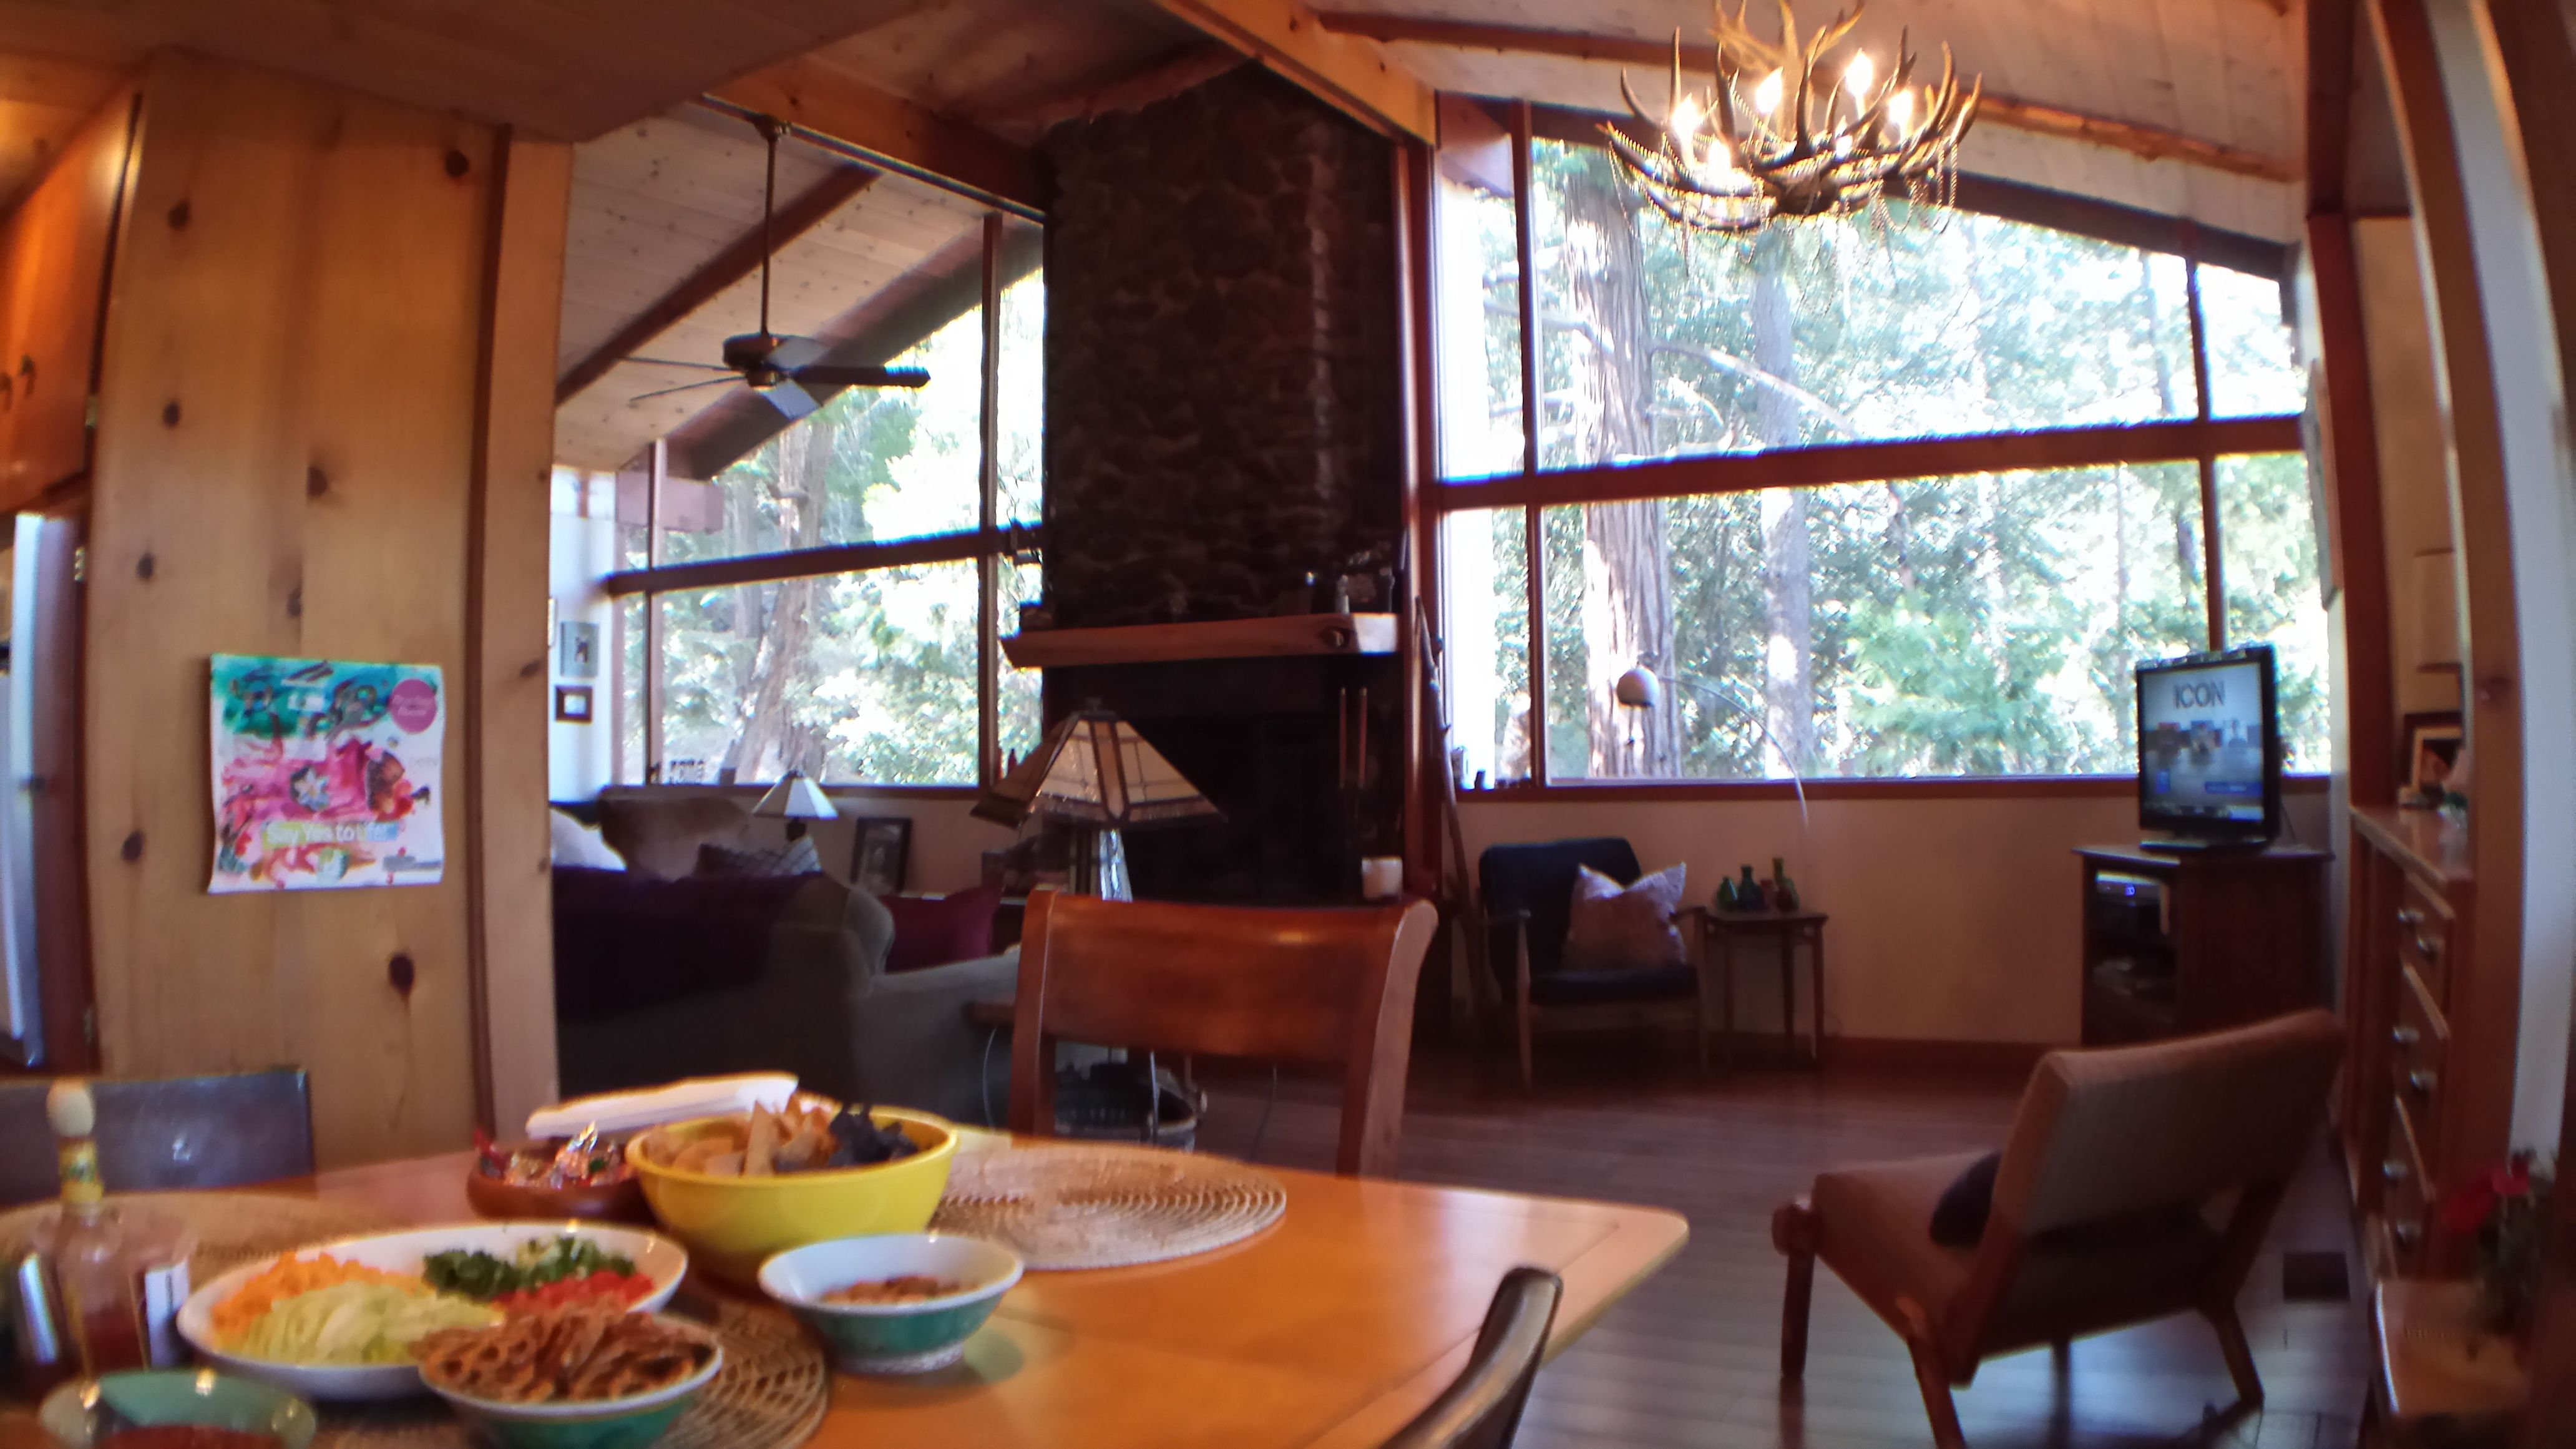 Ad classic norton house frank gehry archdaily - 1957 Frank Gehry David Cabin First House Idyllwild California Upstairs Living